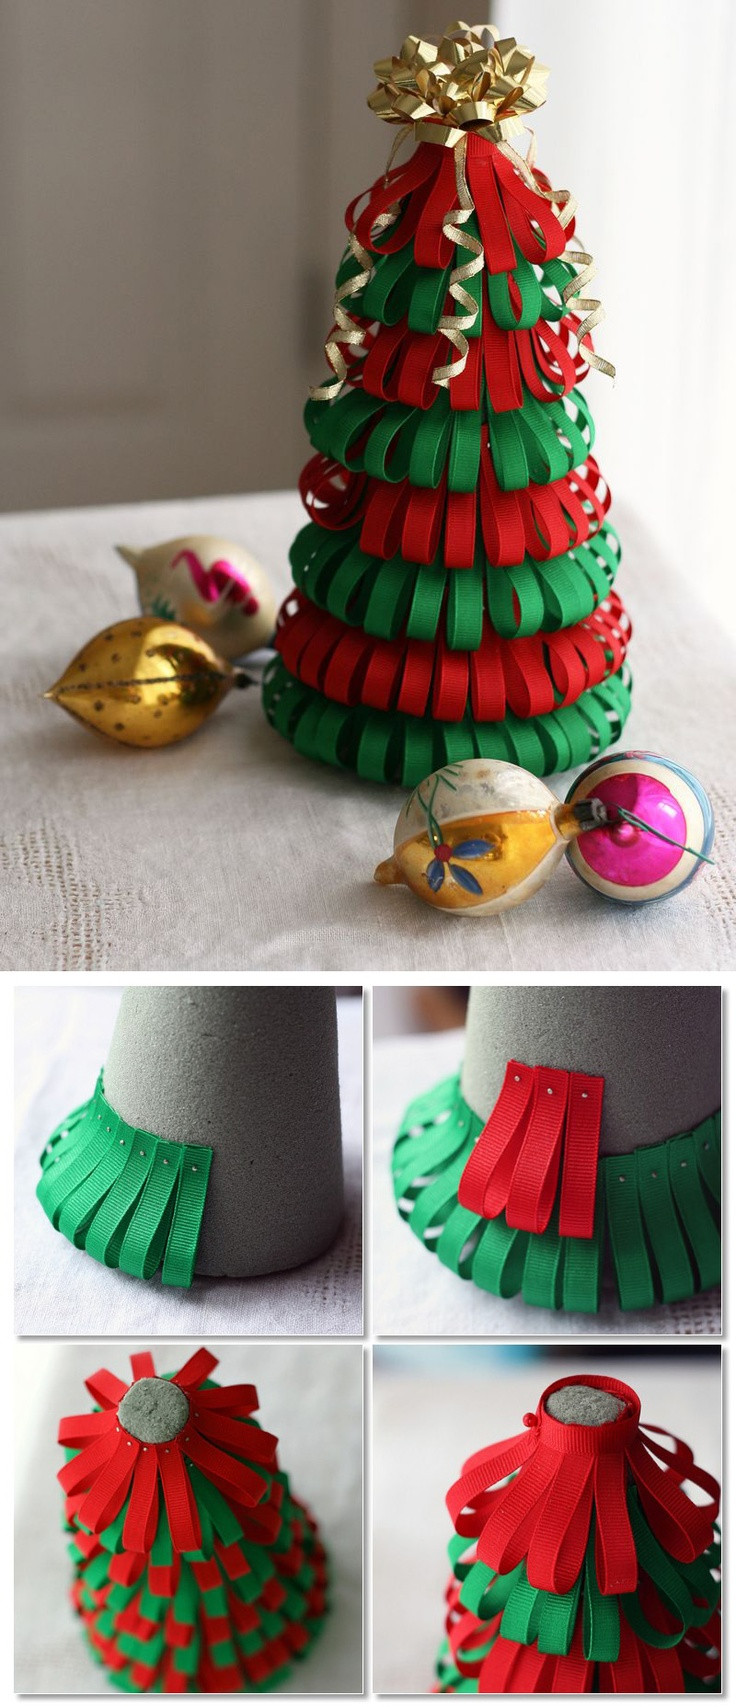 DIY Christmas Decorations Pinterest  31 Cute and Fun DIY Christmas Decorations DesignBump